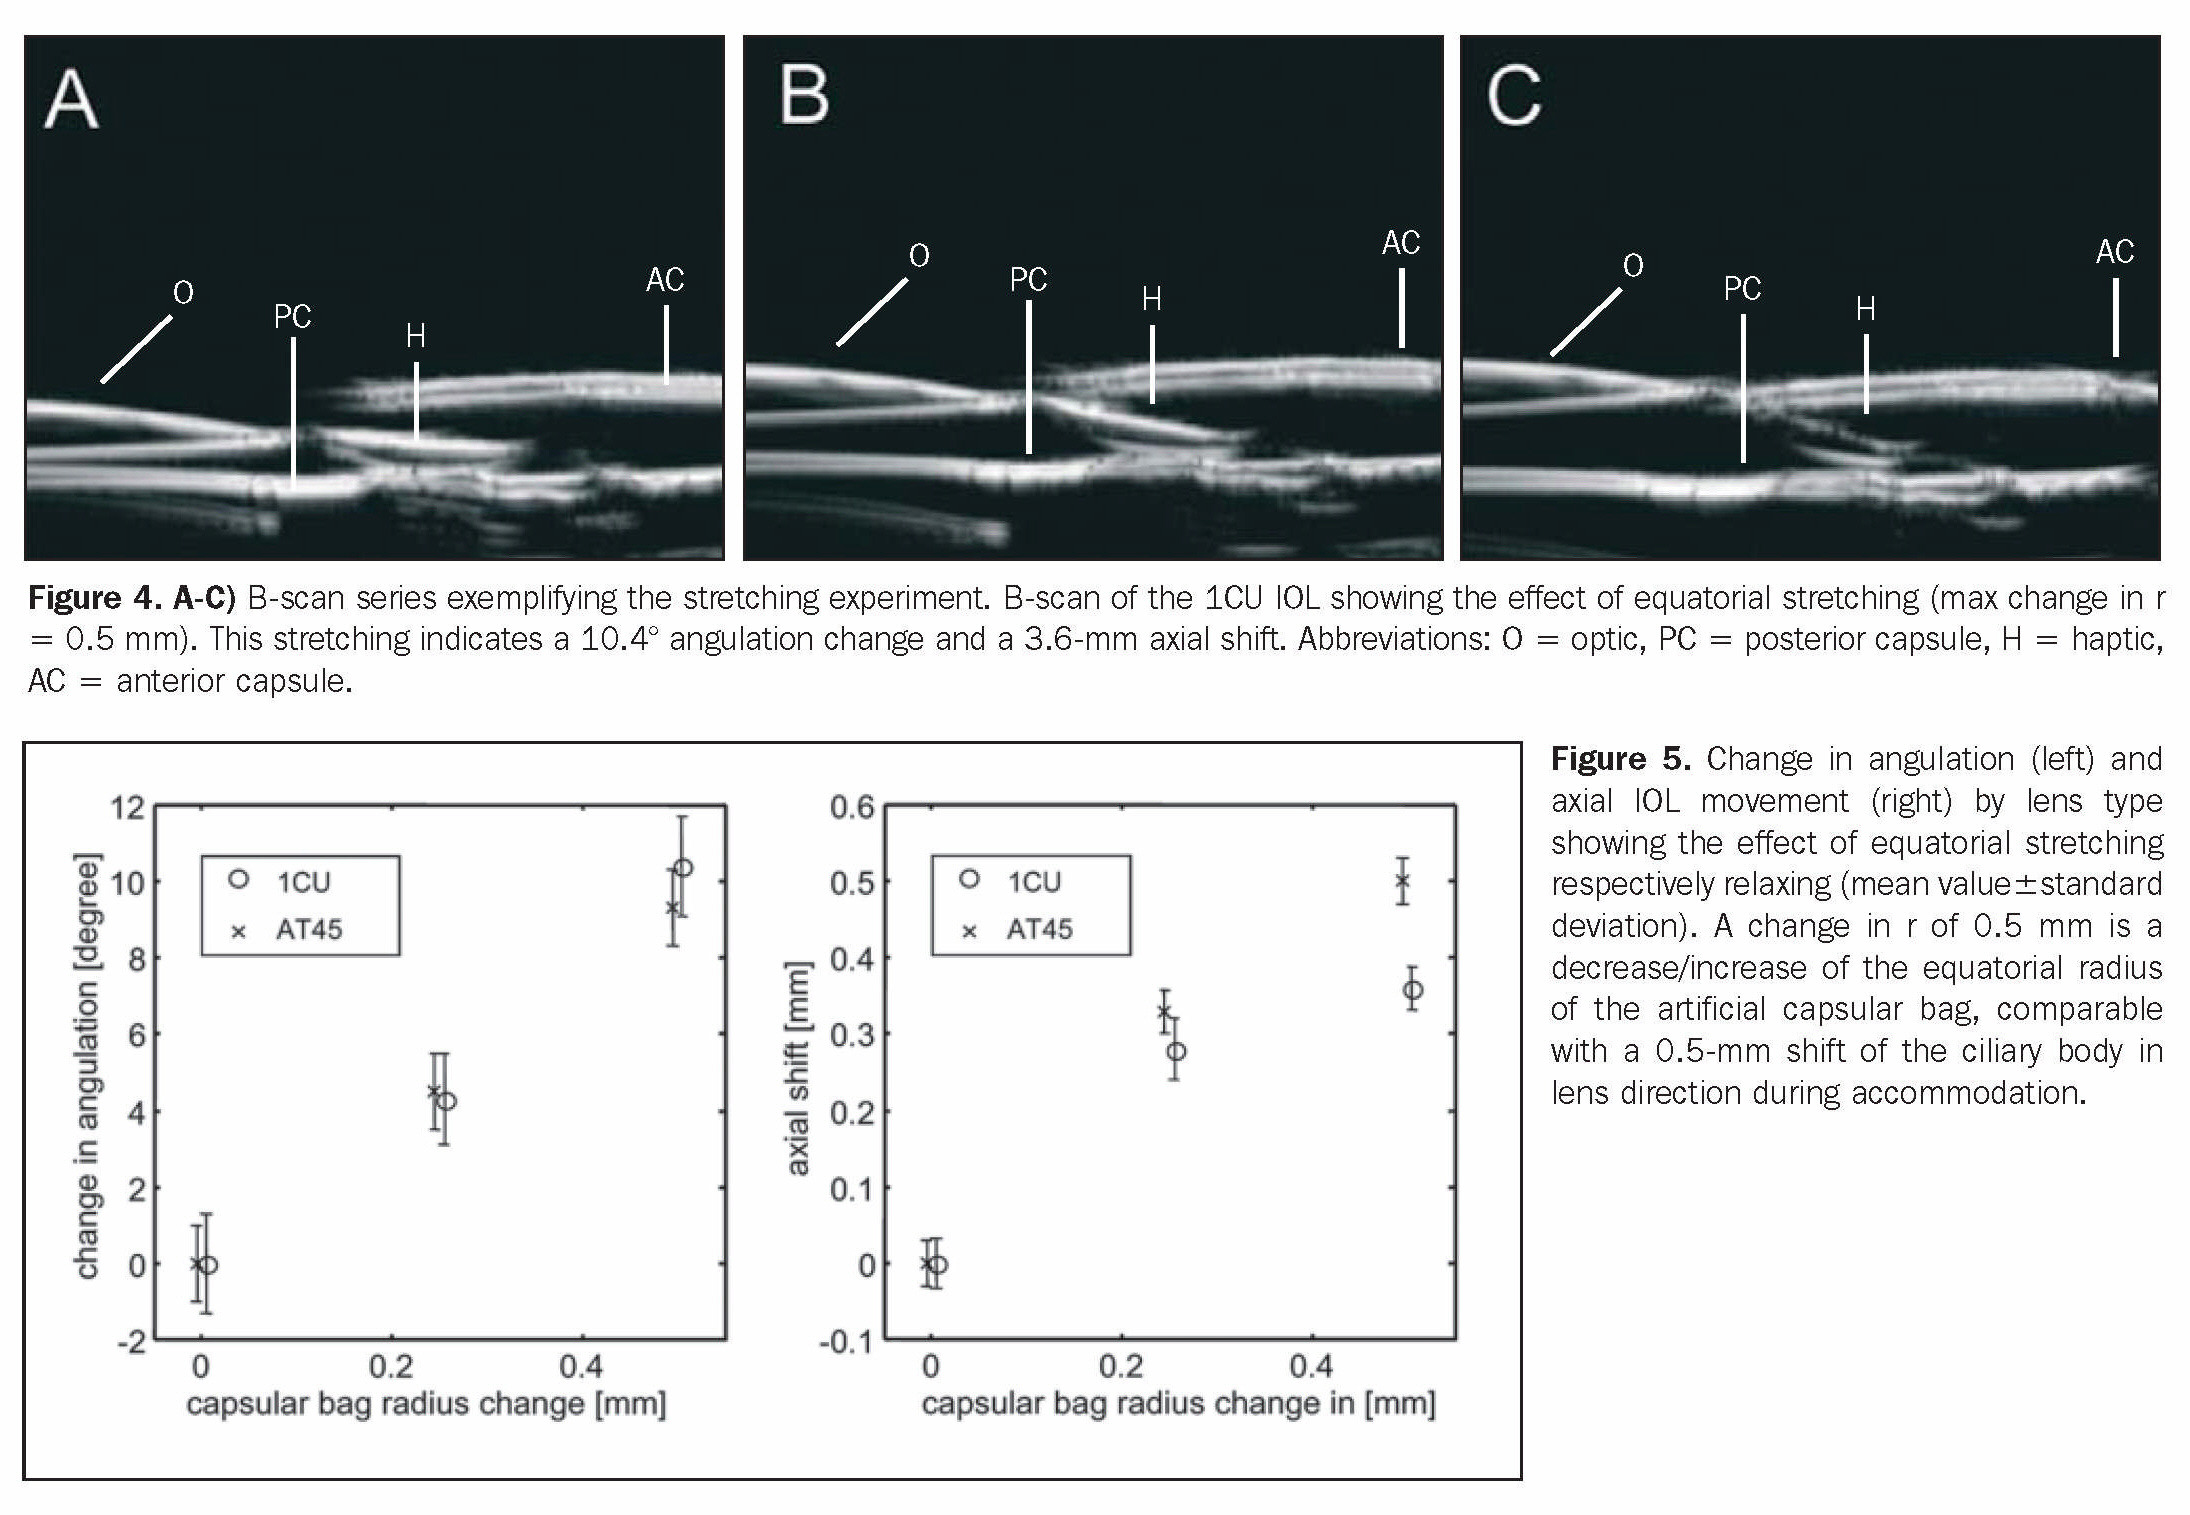 Figure 4. A-C) B-scan series exemplifying the stretching experiment. B-scan of the ICU IOL showing the effect of equatorial stretching (max change in r = 0.5 mm). This stretching indicates a 10.4° angulation change and a 3.6-mm axial shift. Abbreviations: O = optic, PC = posterior capsule, H = haptic, AC = anterior capsule.Figure 5. Change in angulation (left) and axial IOL movement (right) by lens type showing the effect of equatorial stretching respectively relaxing (mean value±standard deviation). A change in r of 0.5 mm is a decrease/increase of the equatorial radius of the artificial capsular bag, comparable with a 0.5-mm shift of the ciliary body in lens direction during accommodation.